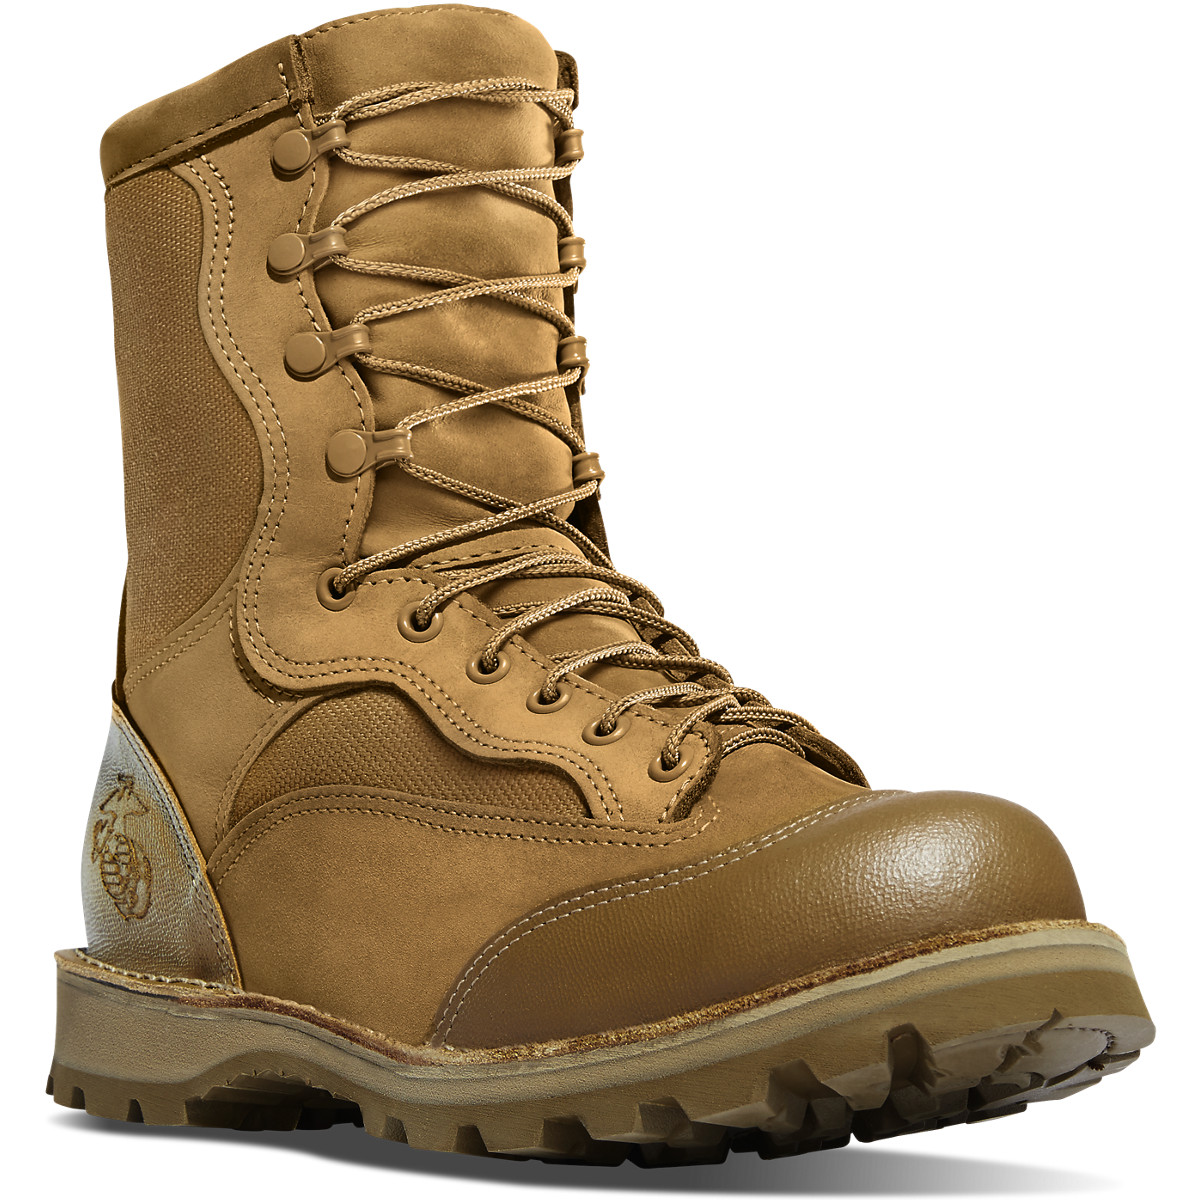 Danner USMC Rat 8 Inch Waterproof GoreTex Military Boot 15660X